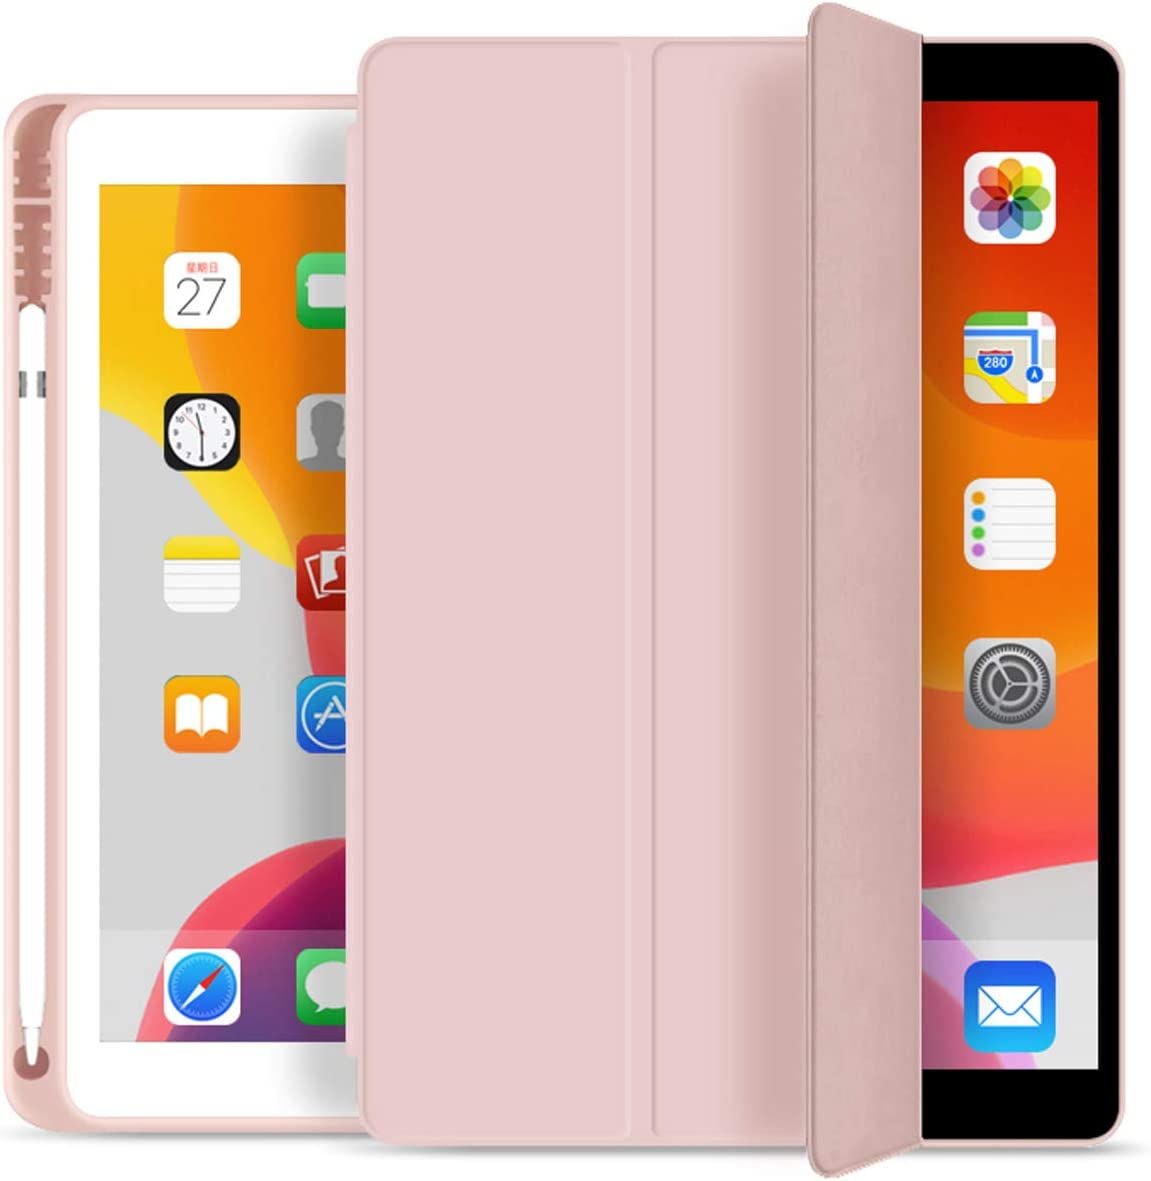 KenKe iPad 7th/8th Gen Case with Pencil Holder,iPad 10.2 inch Lightweight Smart Cover Soft TPU Back,Auto Sleep/Wake for 10.2 New iPad 8th Generation Case 2020 iPad 7th Generation Case 2019 -Pink